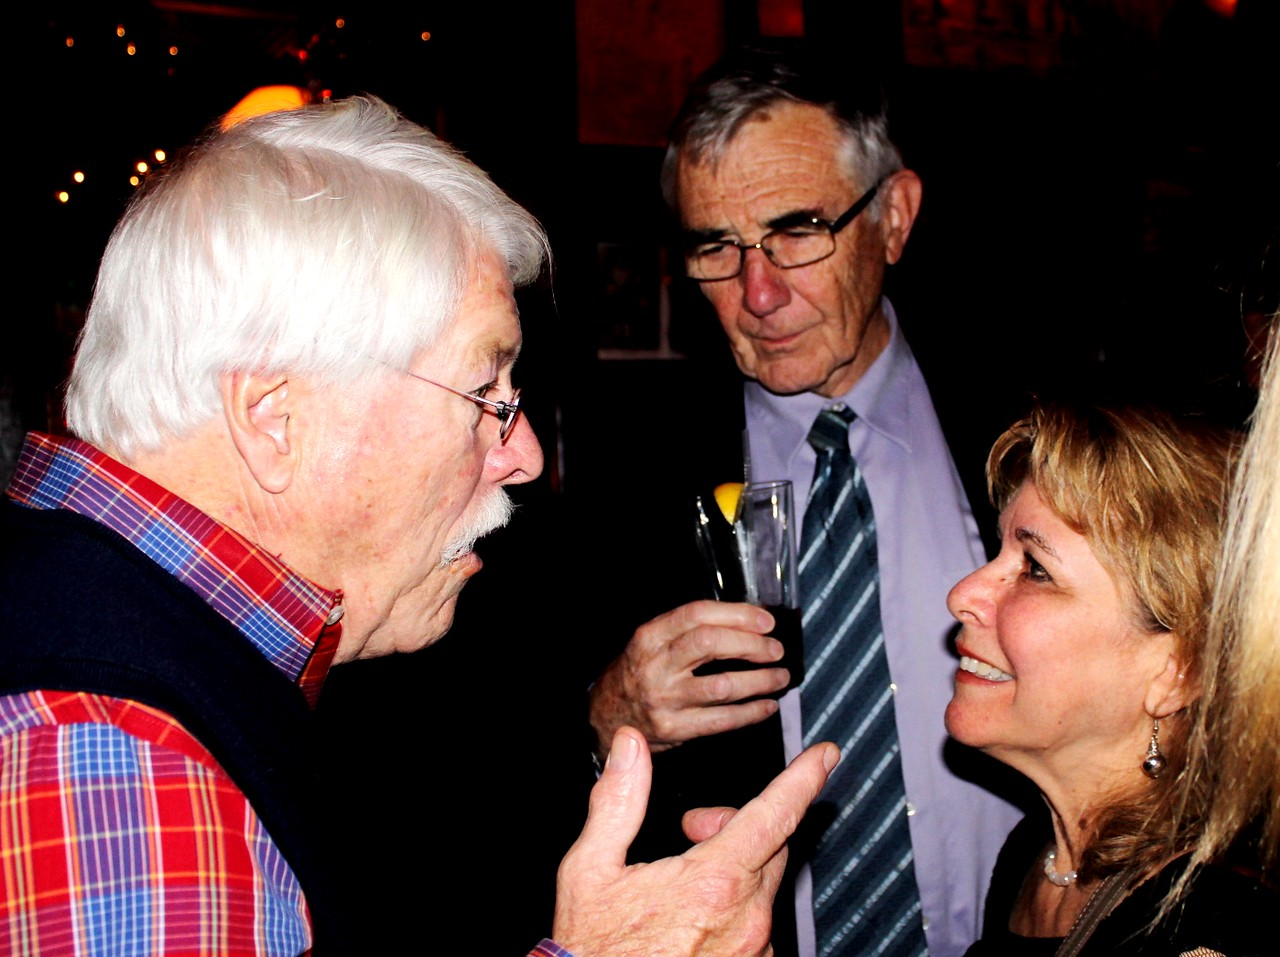 de Racey Gilbert '60, Tom Delaney '58 and Denise Sollami P'02, P'08, P'09